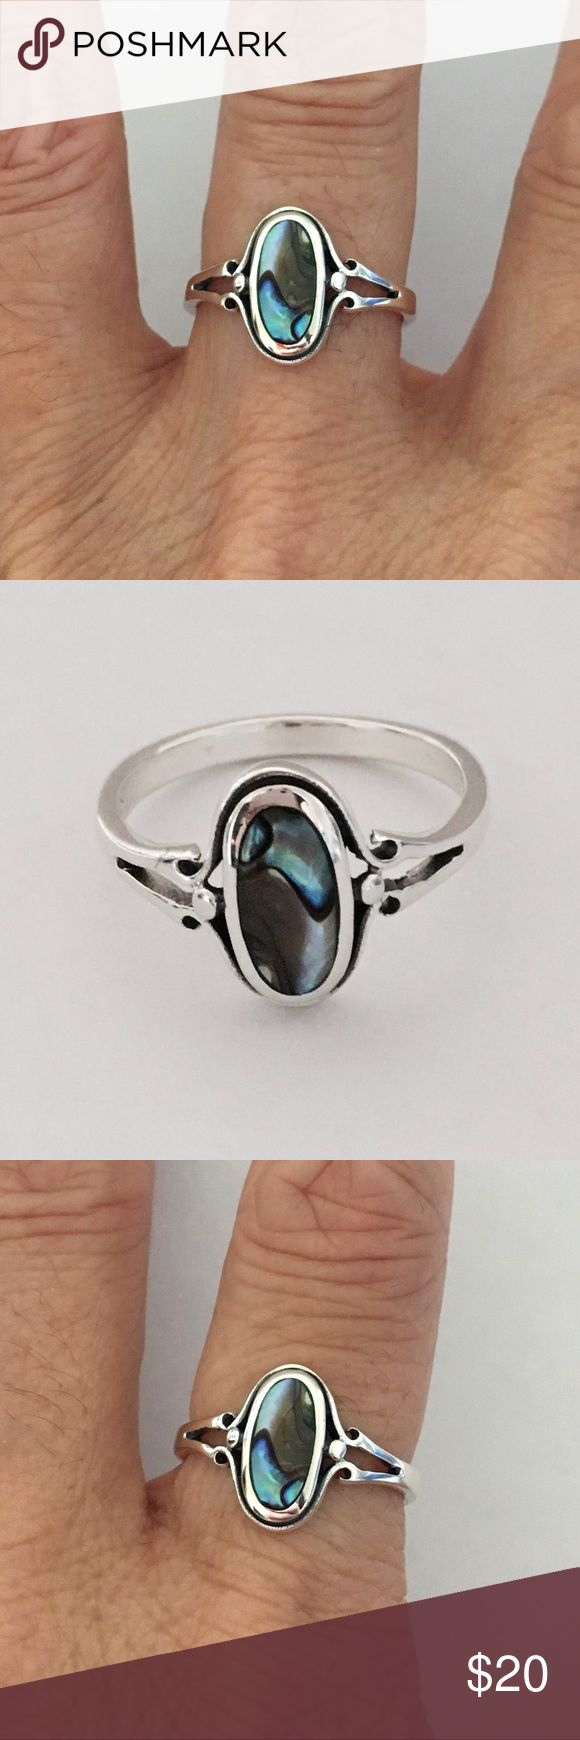 Sterling Silver Oval Abalone Ring Sterling Silver Oval Abalone Ring, Pinky Ring, Index Ring, Thumb Ring, 925 Sterling Silver, Stone Abalone, Face Height 14 mm Jewelry Rings